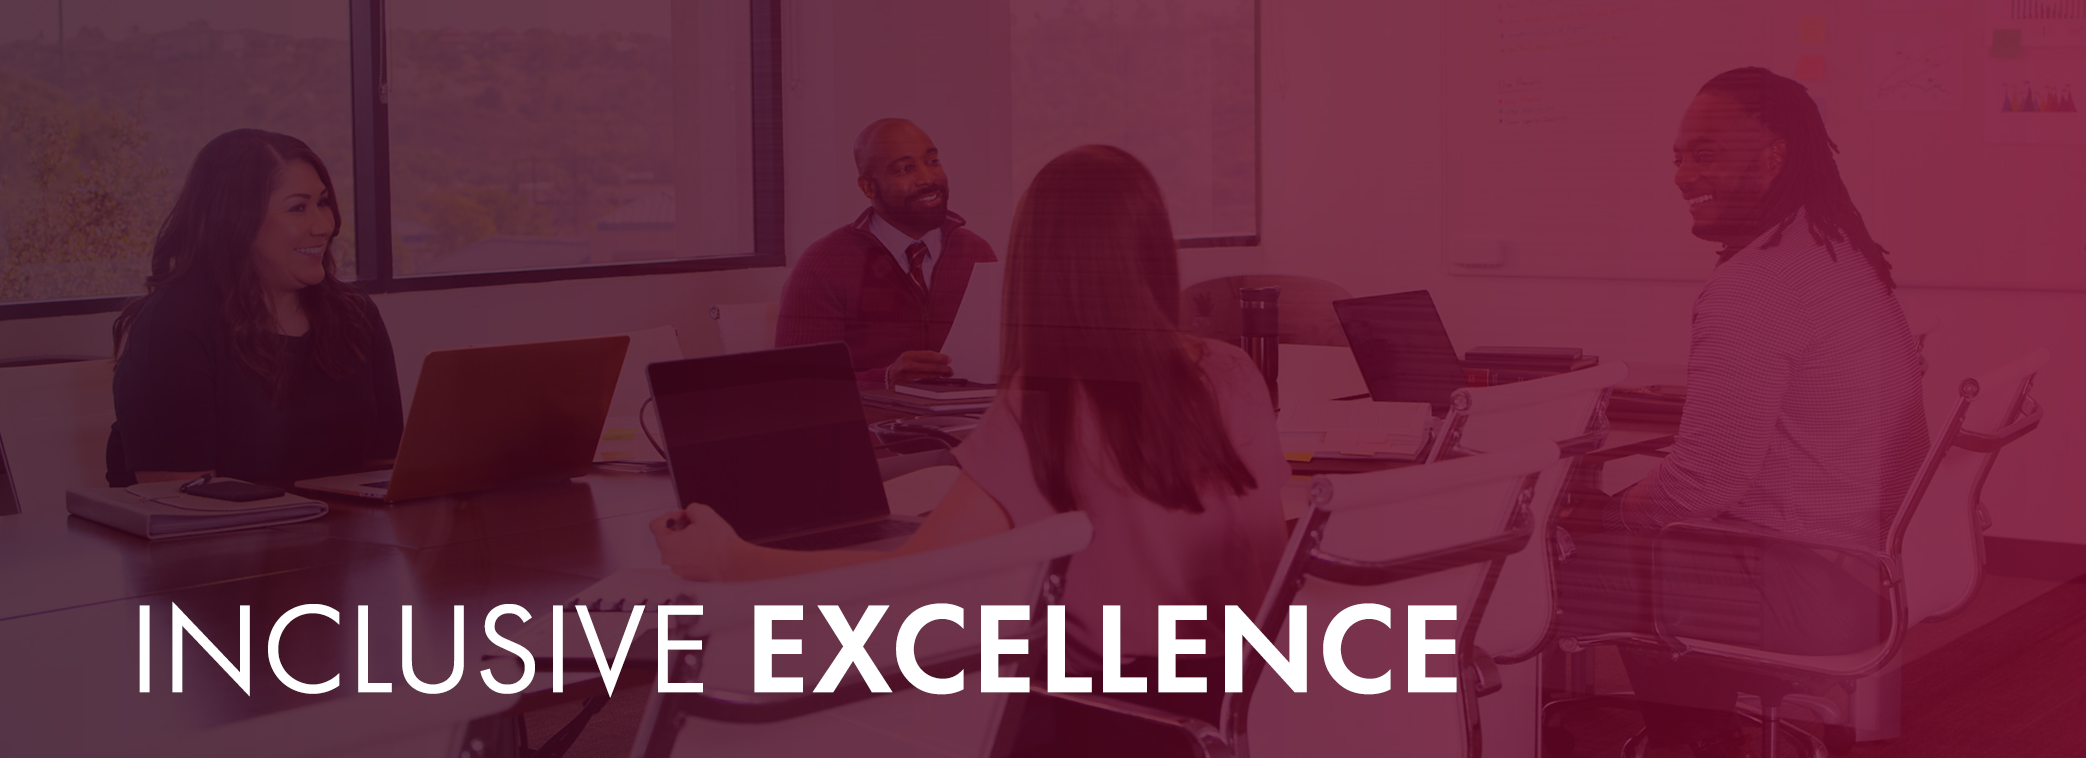 Inclusive Excellence - NCU